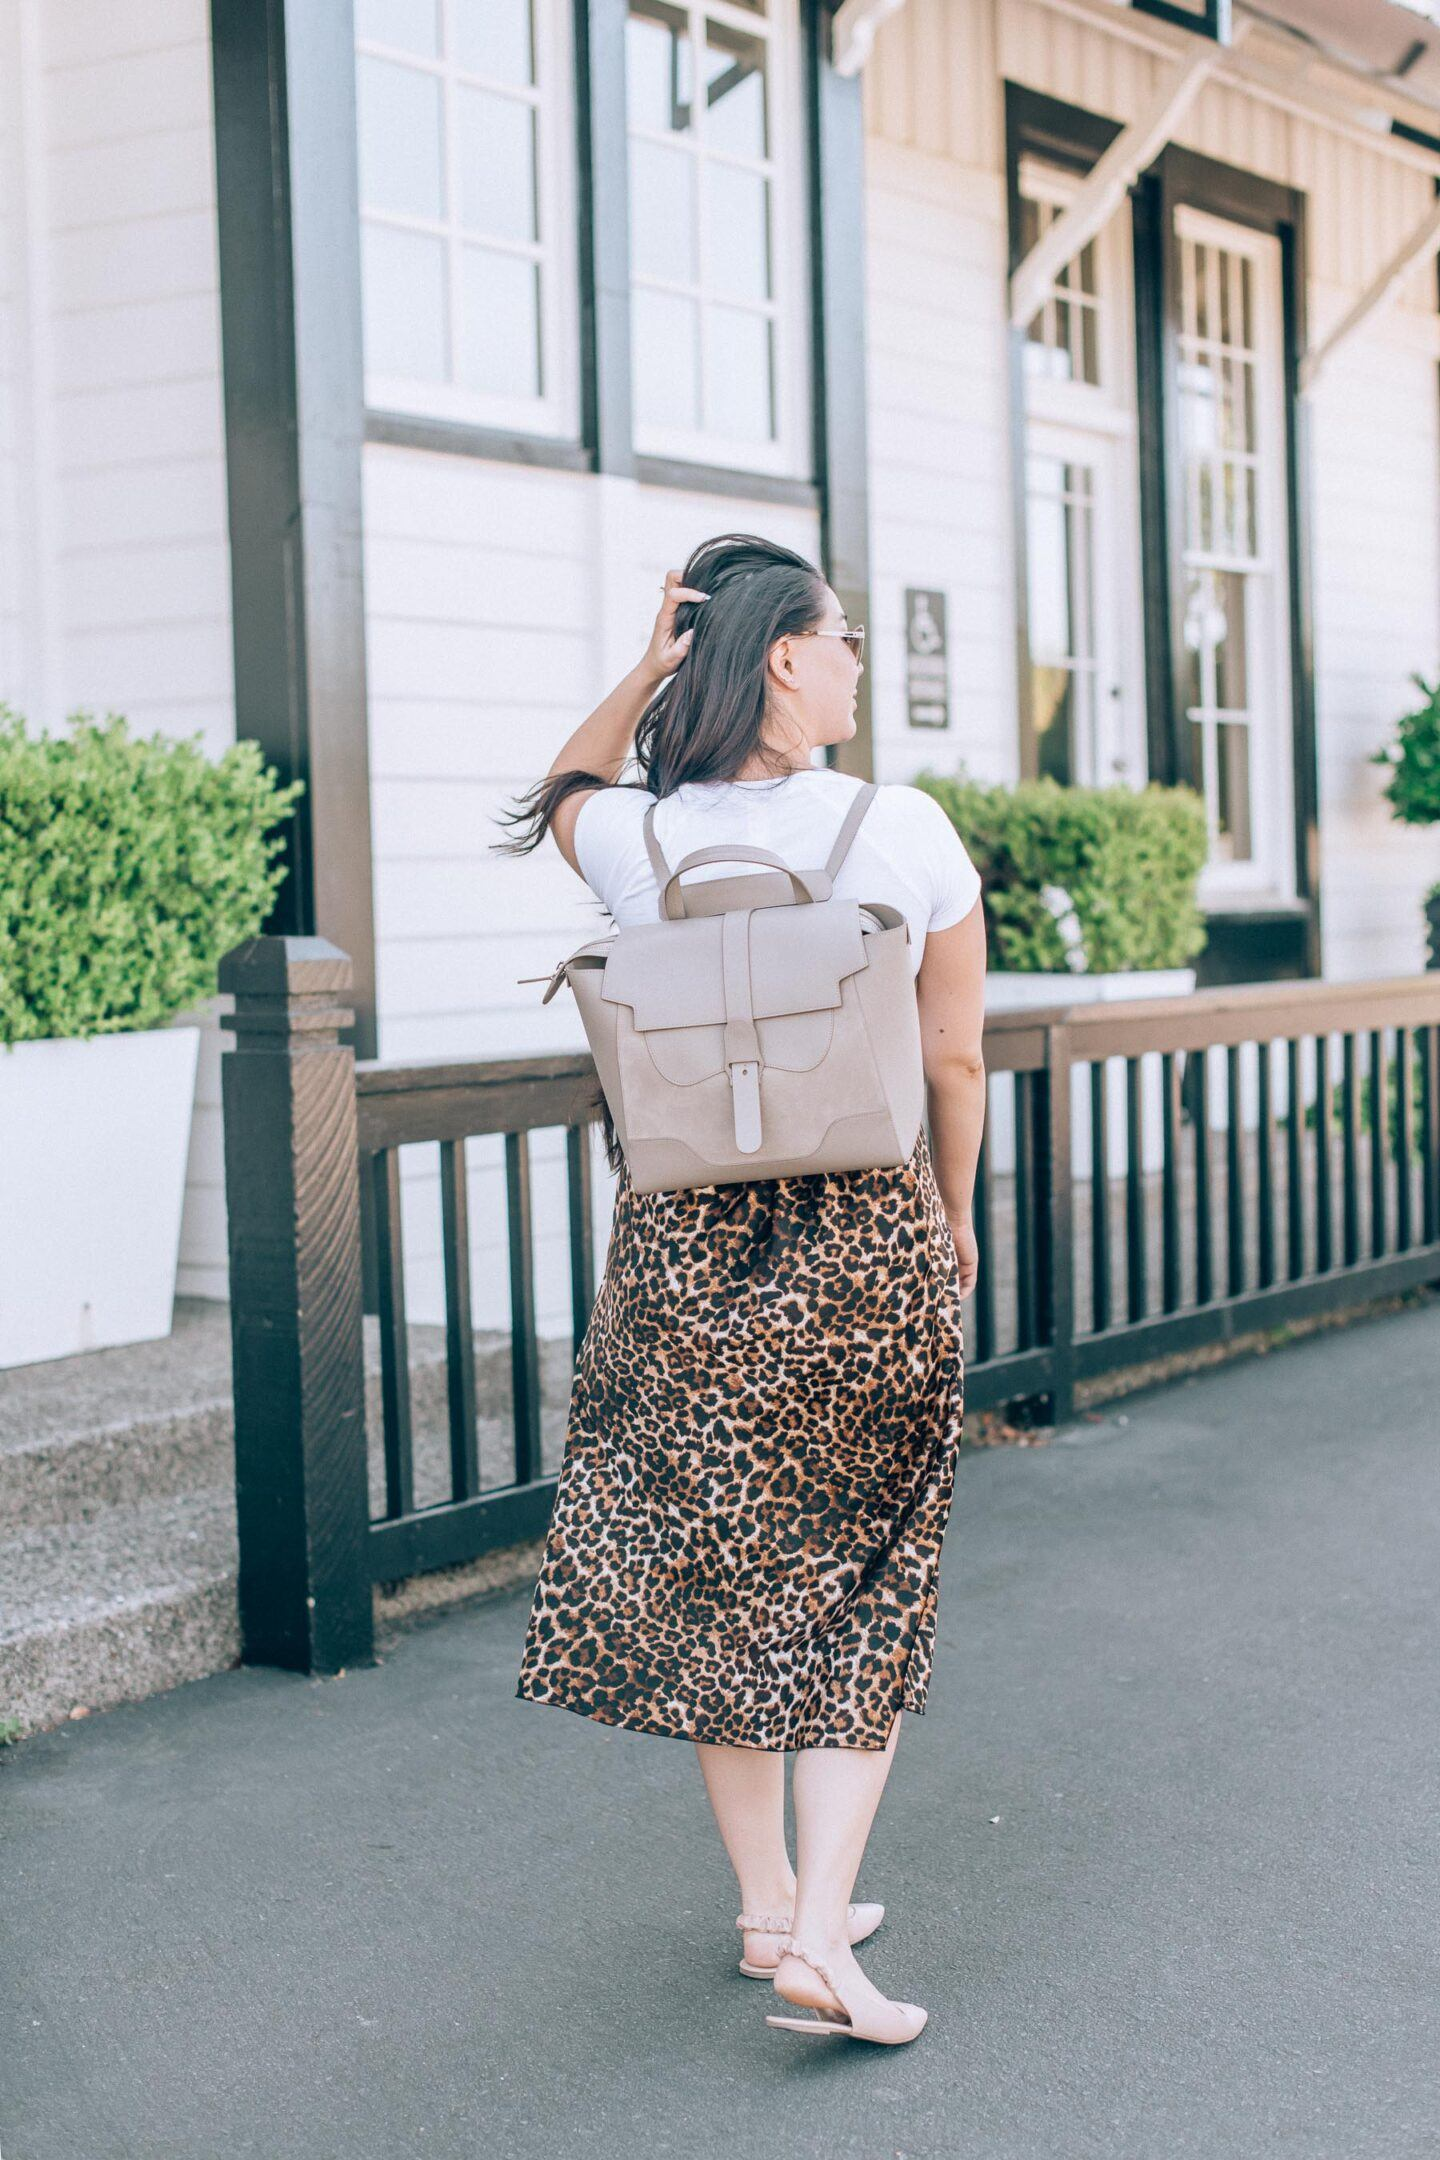 Senreve Maestra bag review, by fashion blogger What The Fab